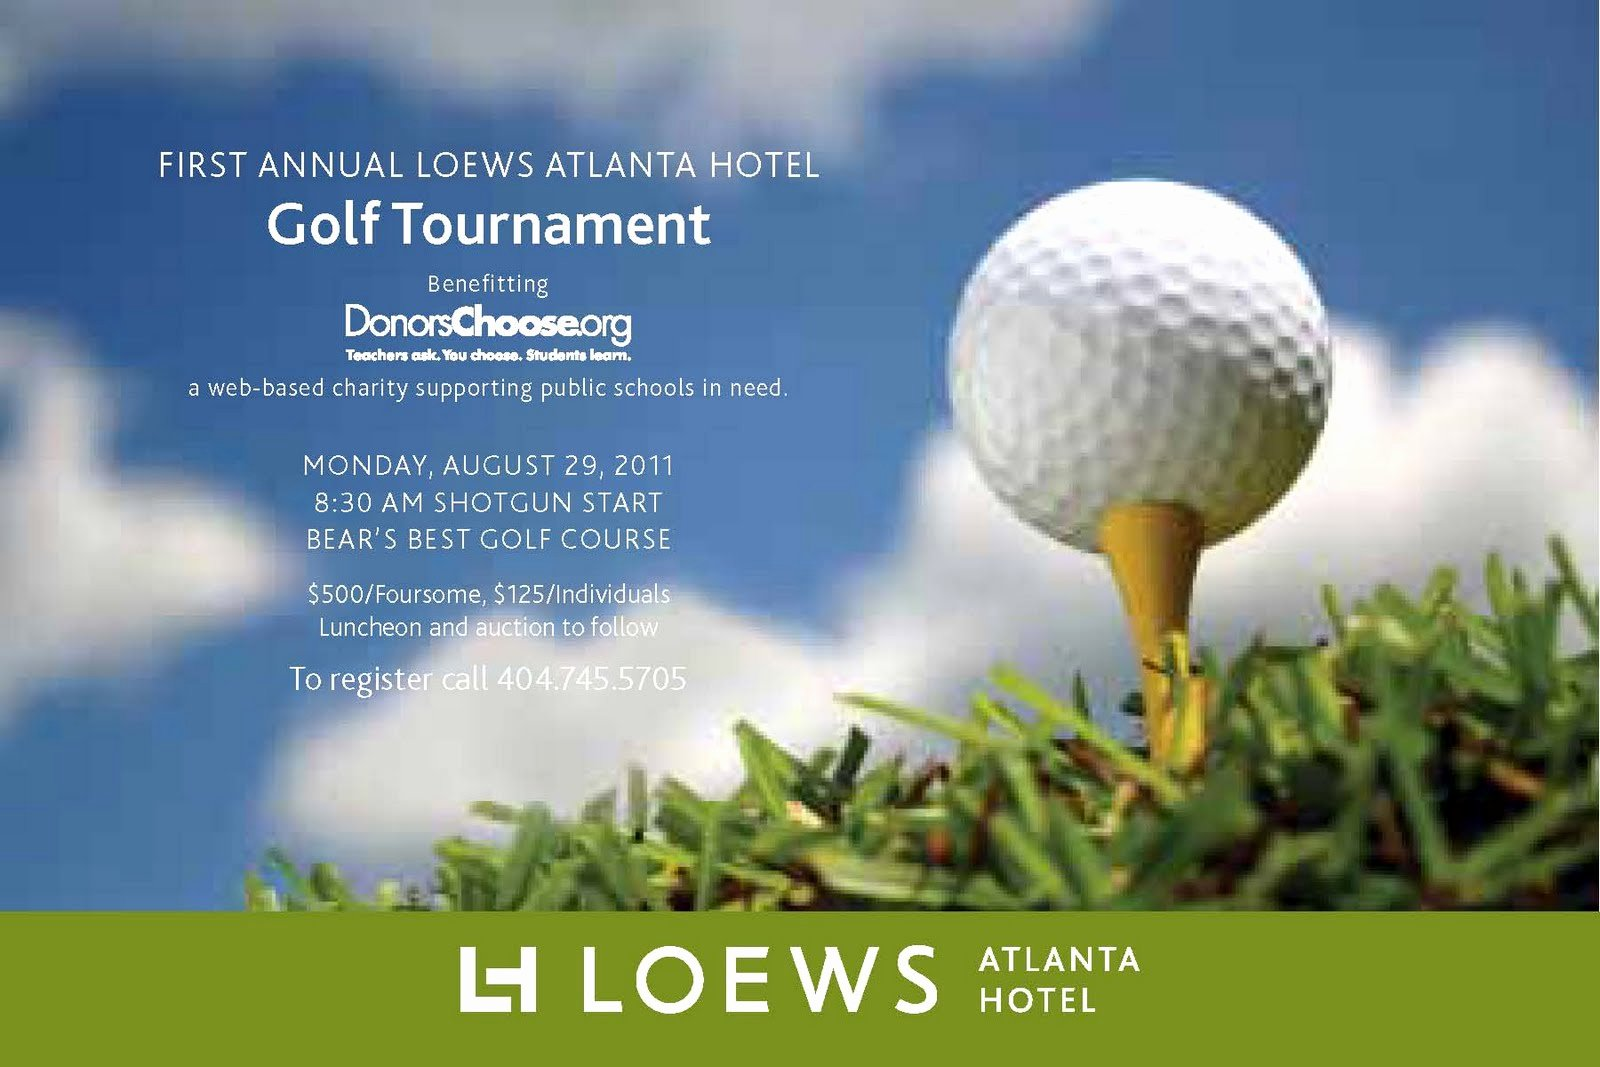 Golf Outing Invitation Template Best Of Everything Midtown atlanta Join Loews atlanta Hotel for